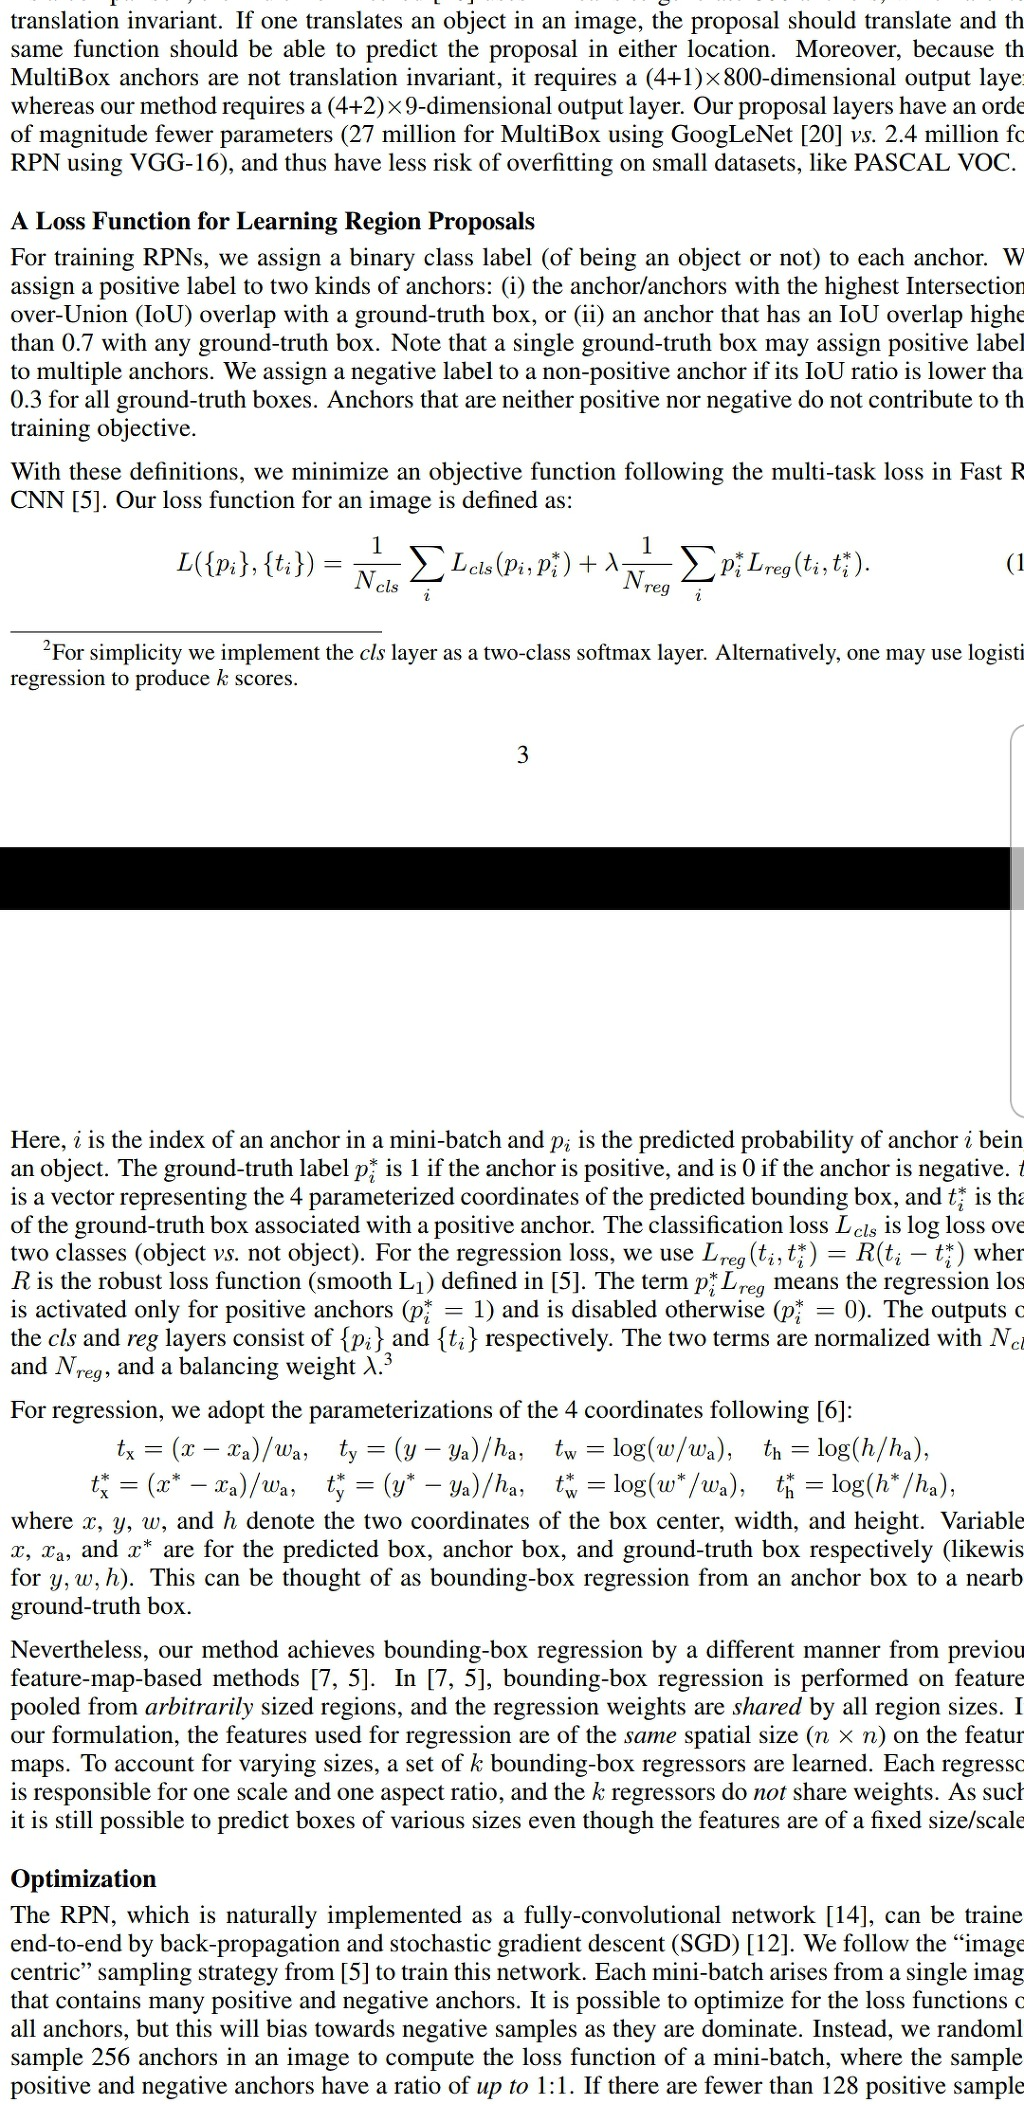 Loss function for faster rcnn, ssd , yolo